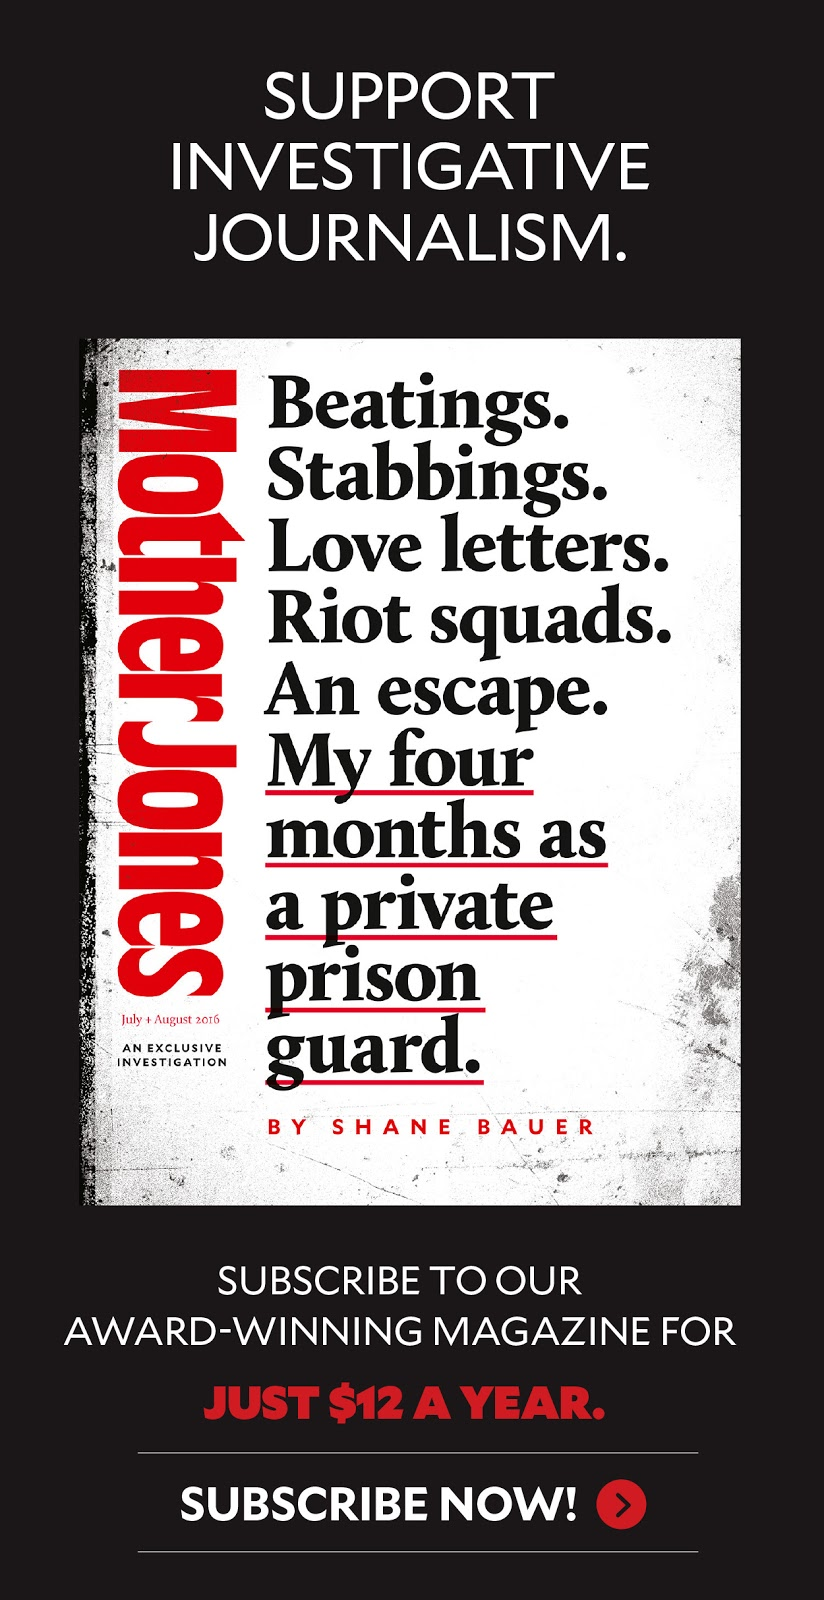 My Four Months as a Private Prison Guard: A Mother Jones